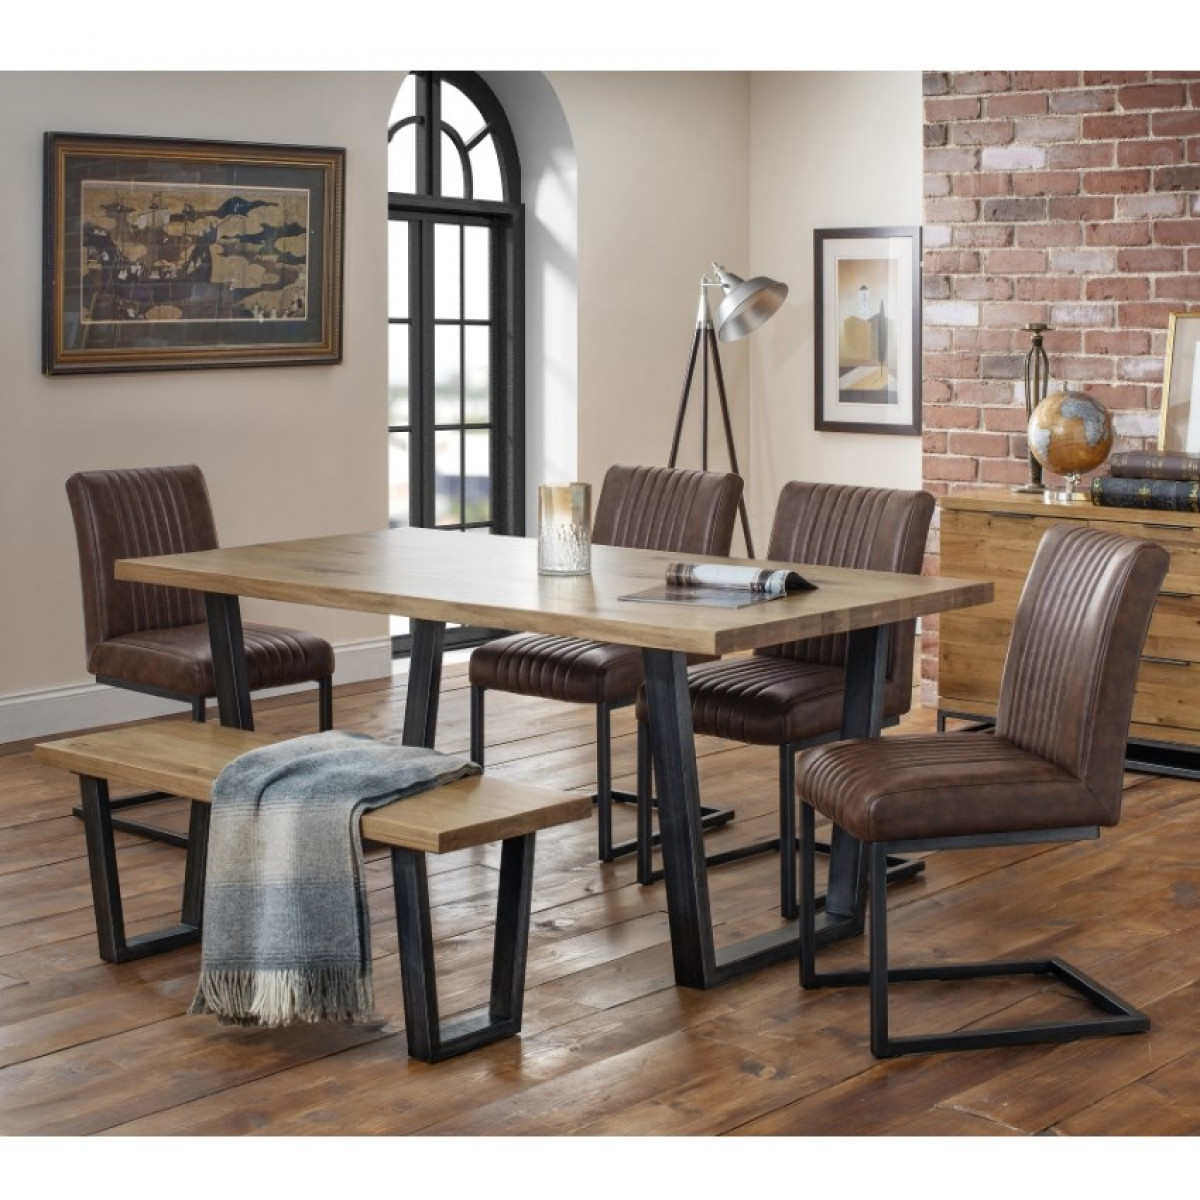 a94a692483 Dining Set - Julian Bowen Brooklyn Dining Table, 4 Dining Chairs and Bench  BRO105